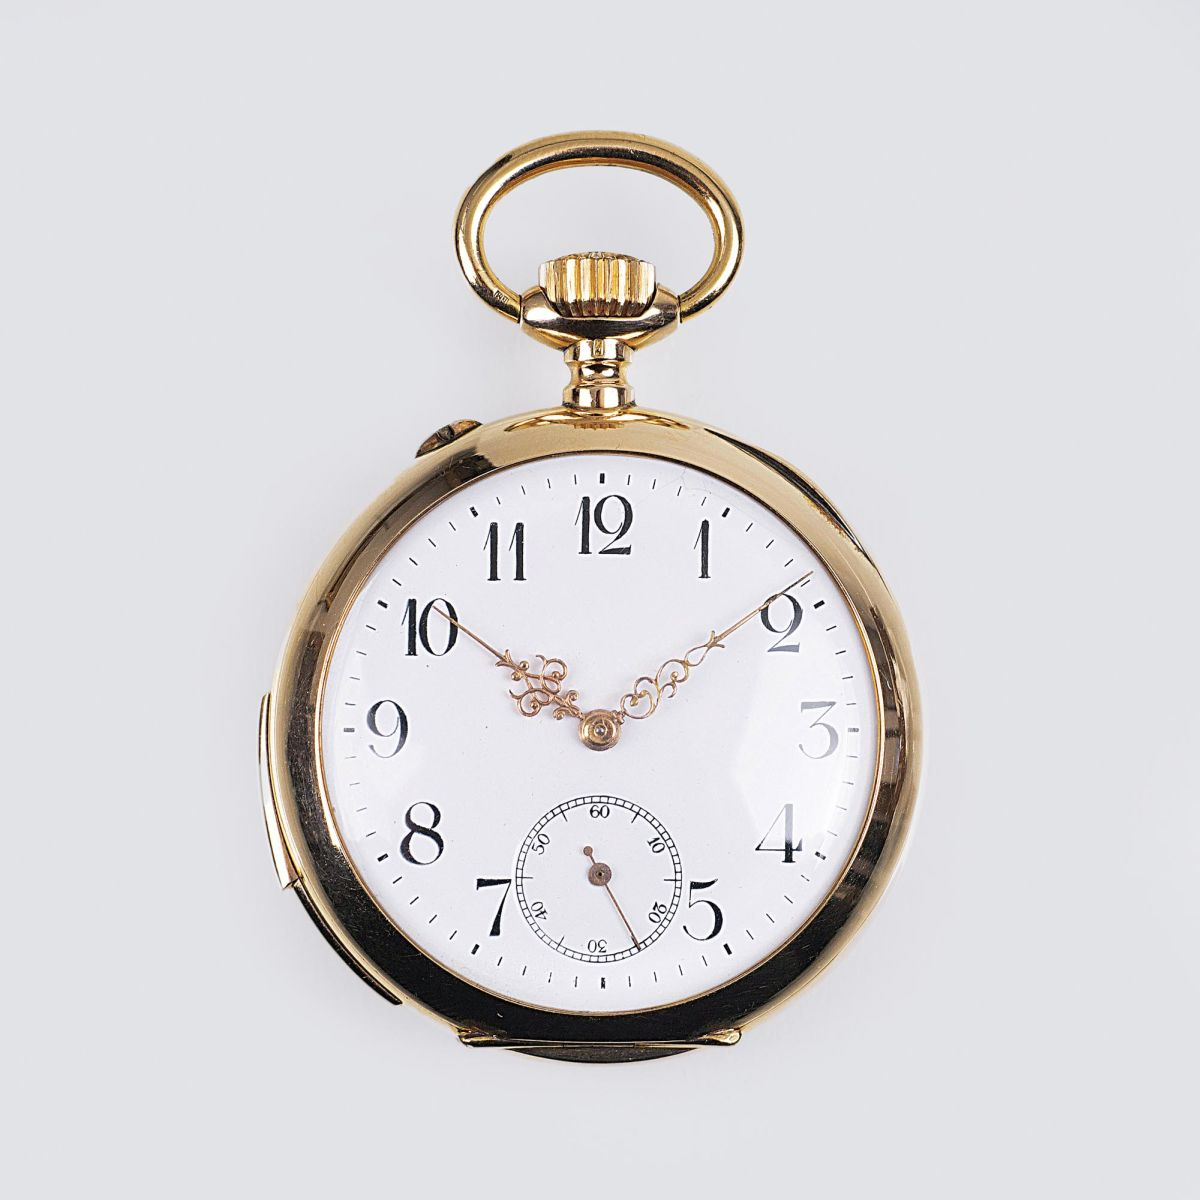 A Pocket Watch with Small Second and Repetition by Astra